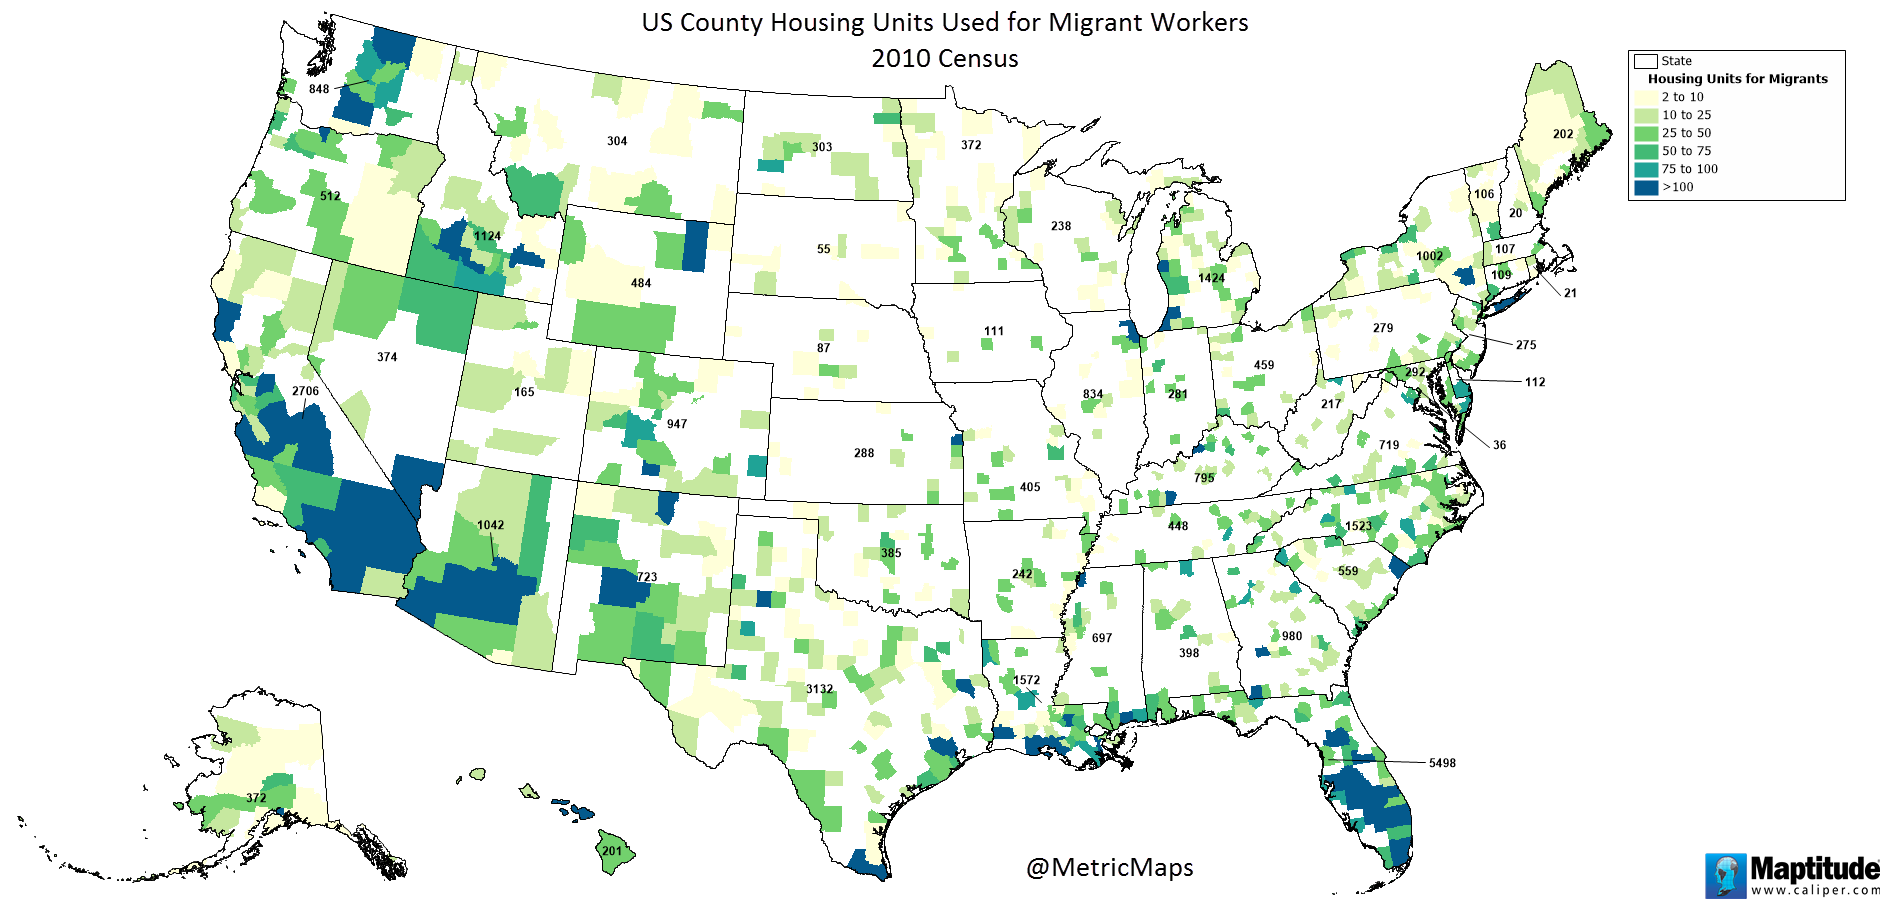 U.S. County Housing Units Used for Migrant Workers